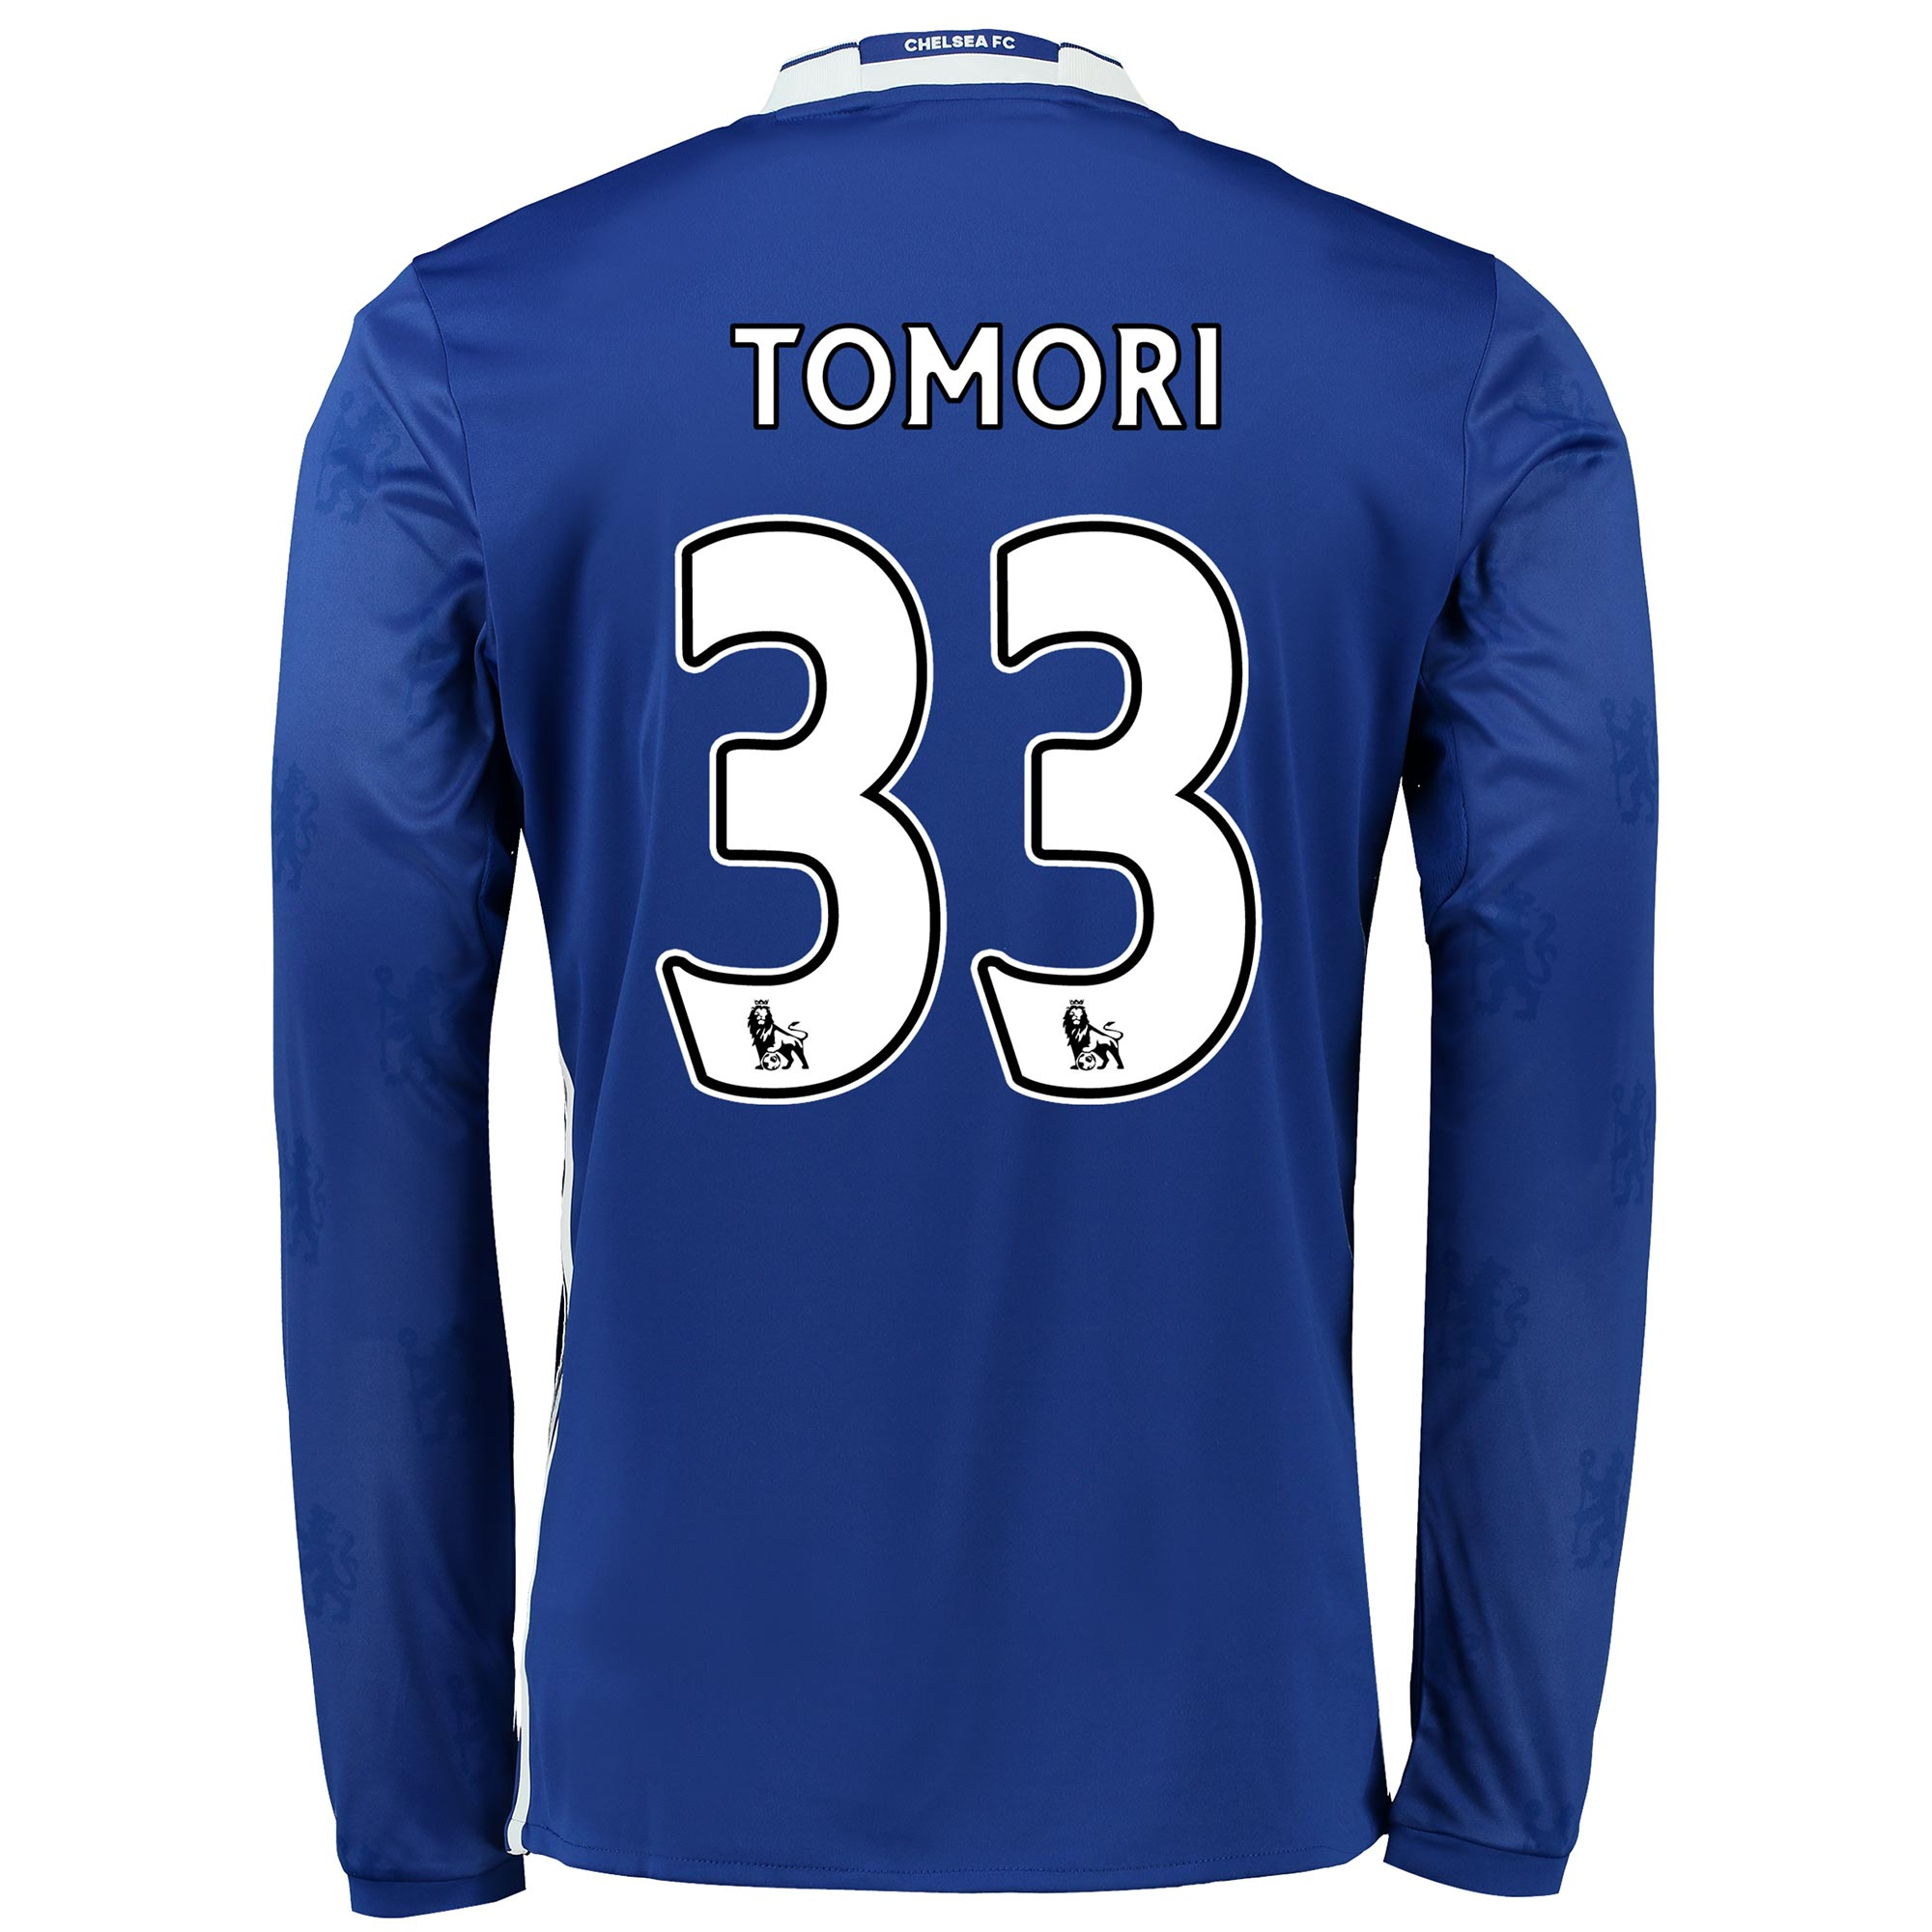 Chelsea Home Shirt 2016-17 - Kids - Long Sleeve with Tomori 33 printin